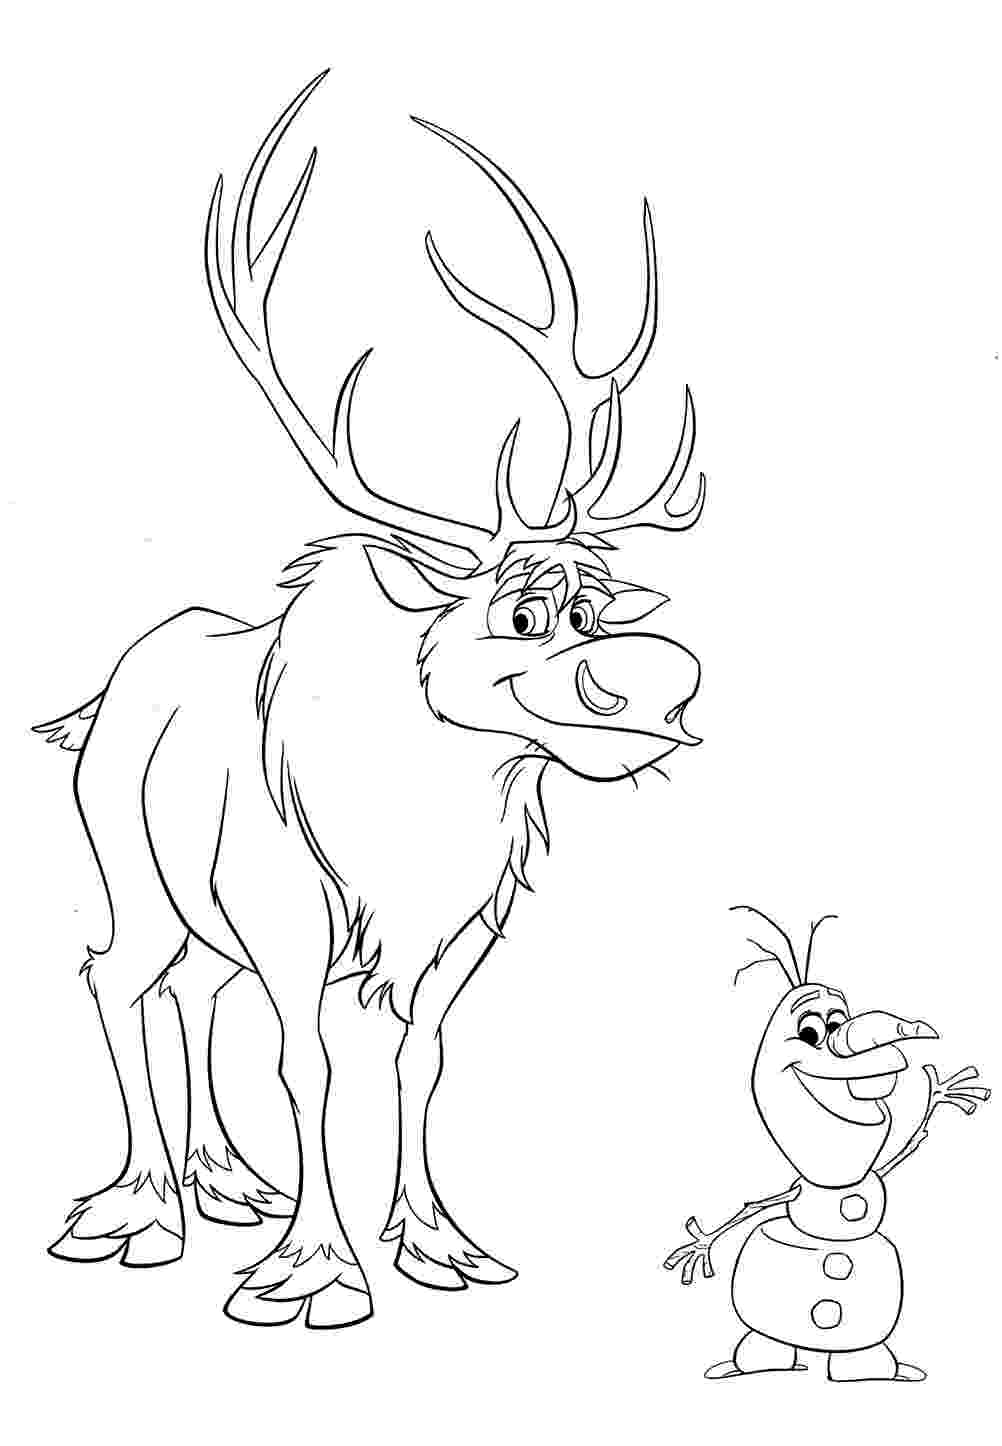 sven coloring pages frozen coloring pages sven 03 coloring pages sven